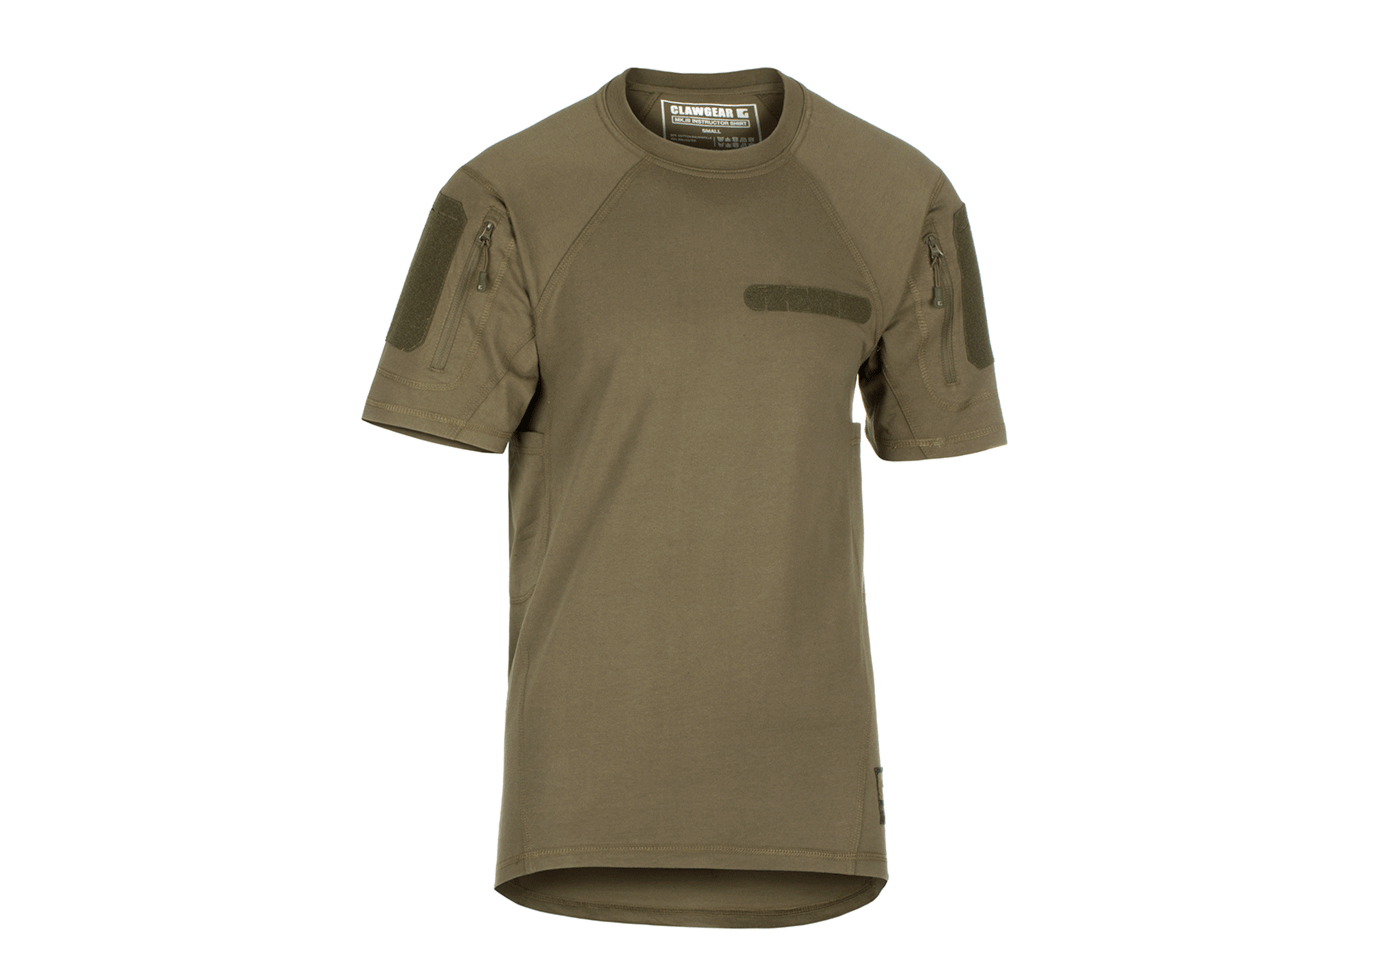 Clawgear MK.II INSTRUCTOR Shirt, RAL7013